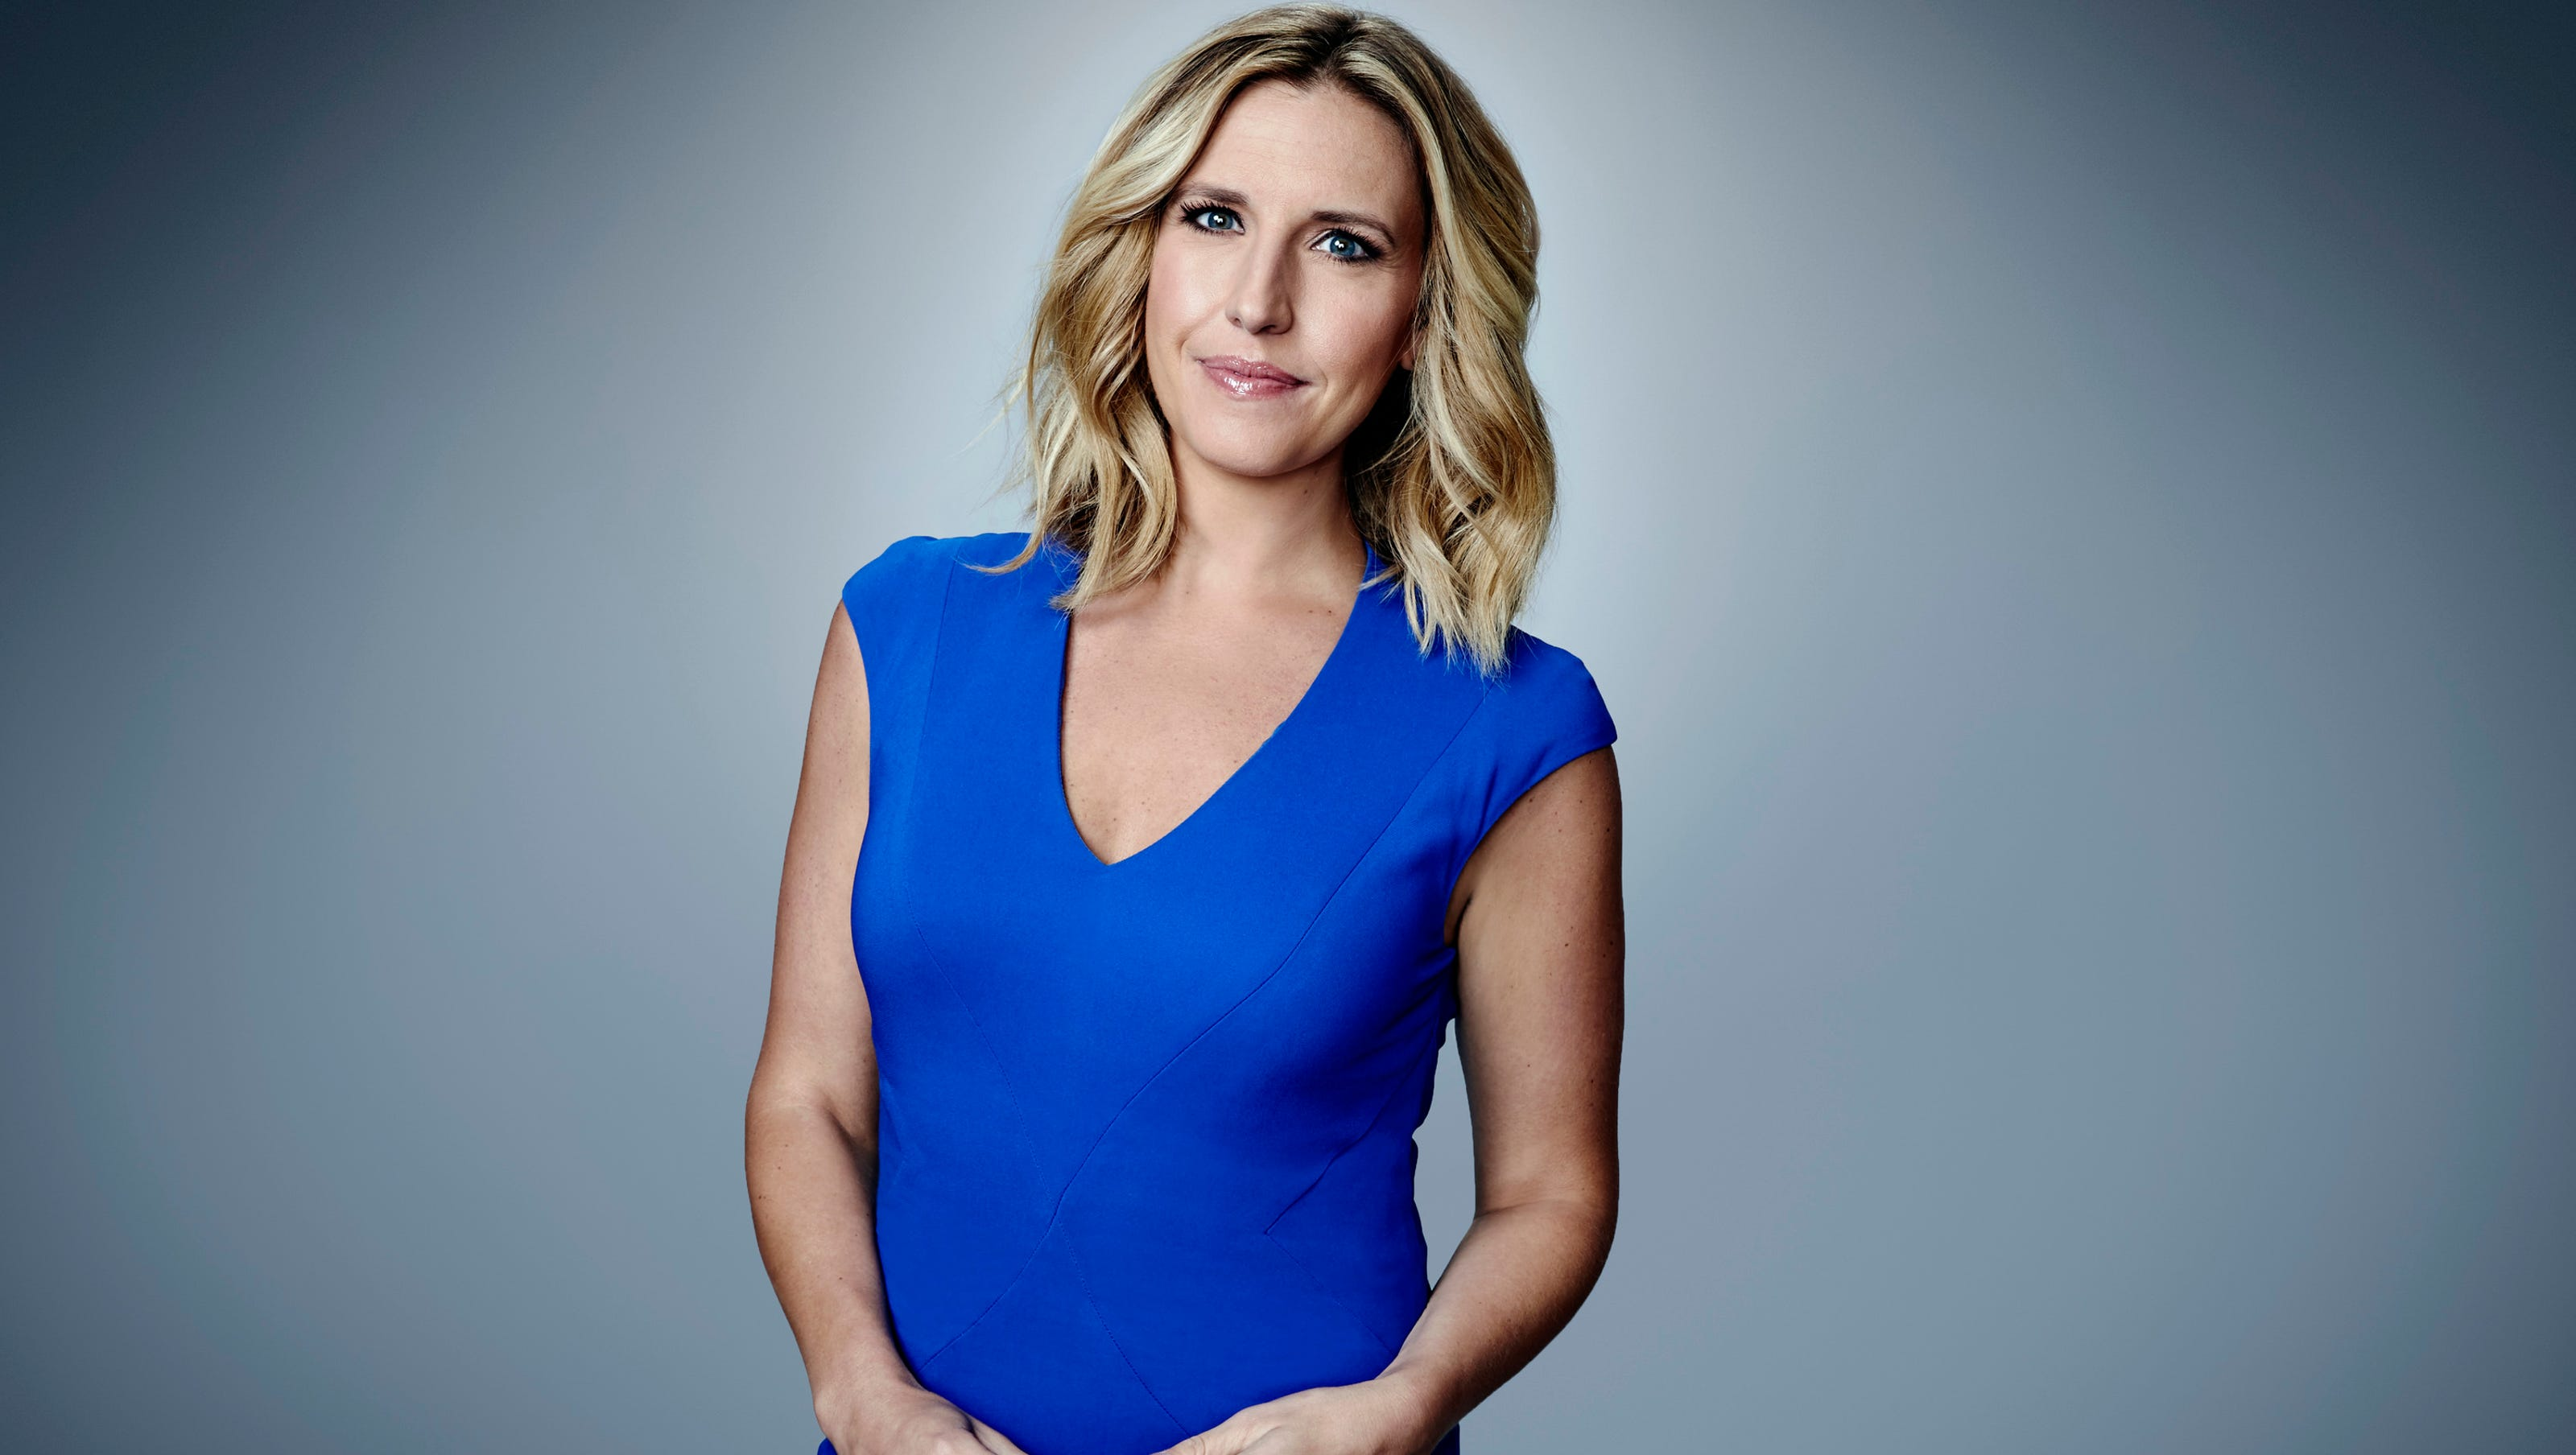 Cnns Poppy Harlow Finding Happiness In No